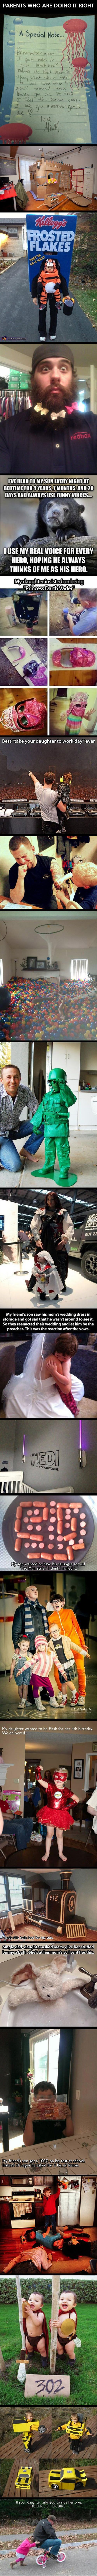 Parents who are doing it right. I love the one about the dad reading the stories, so sweet.